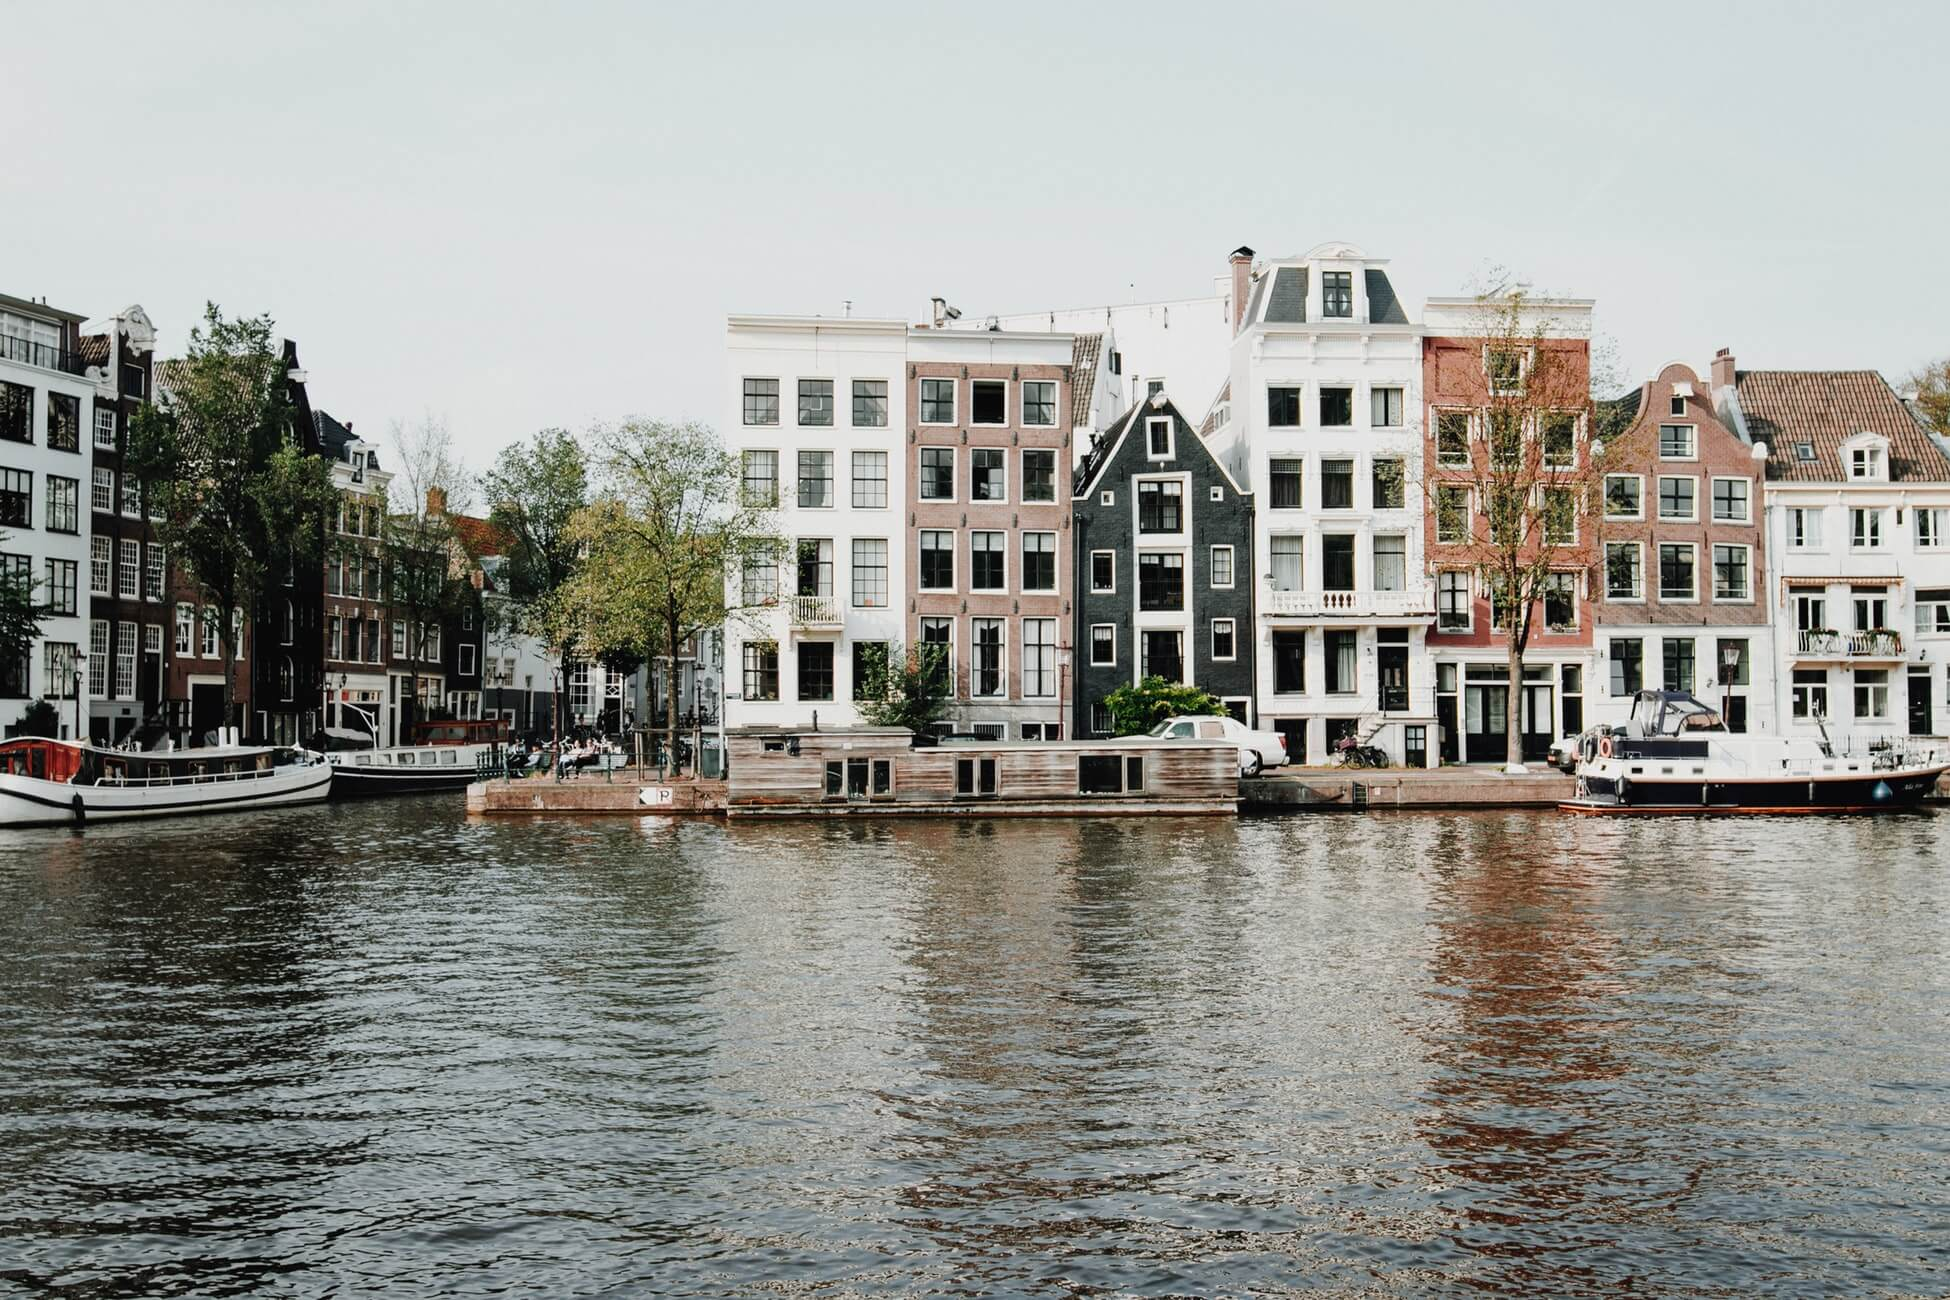 10 interesting facts about the Dutch language